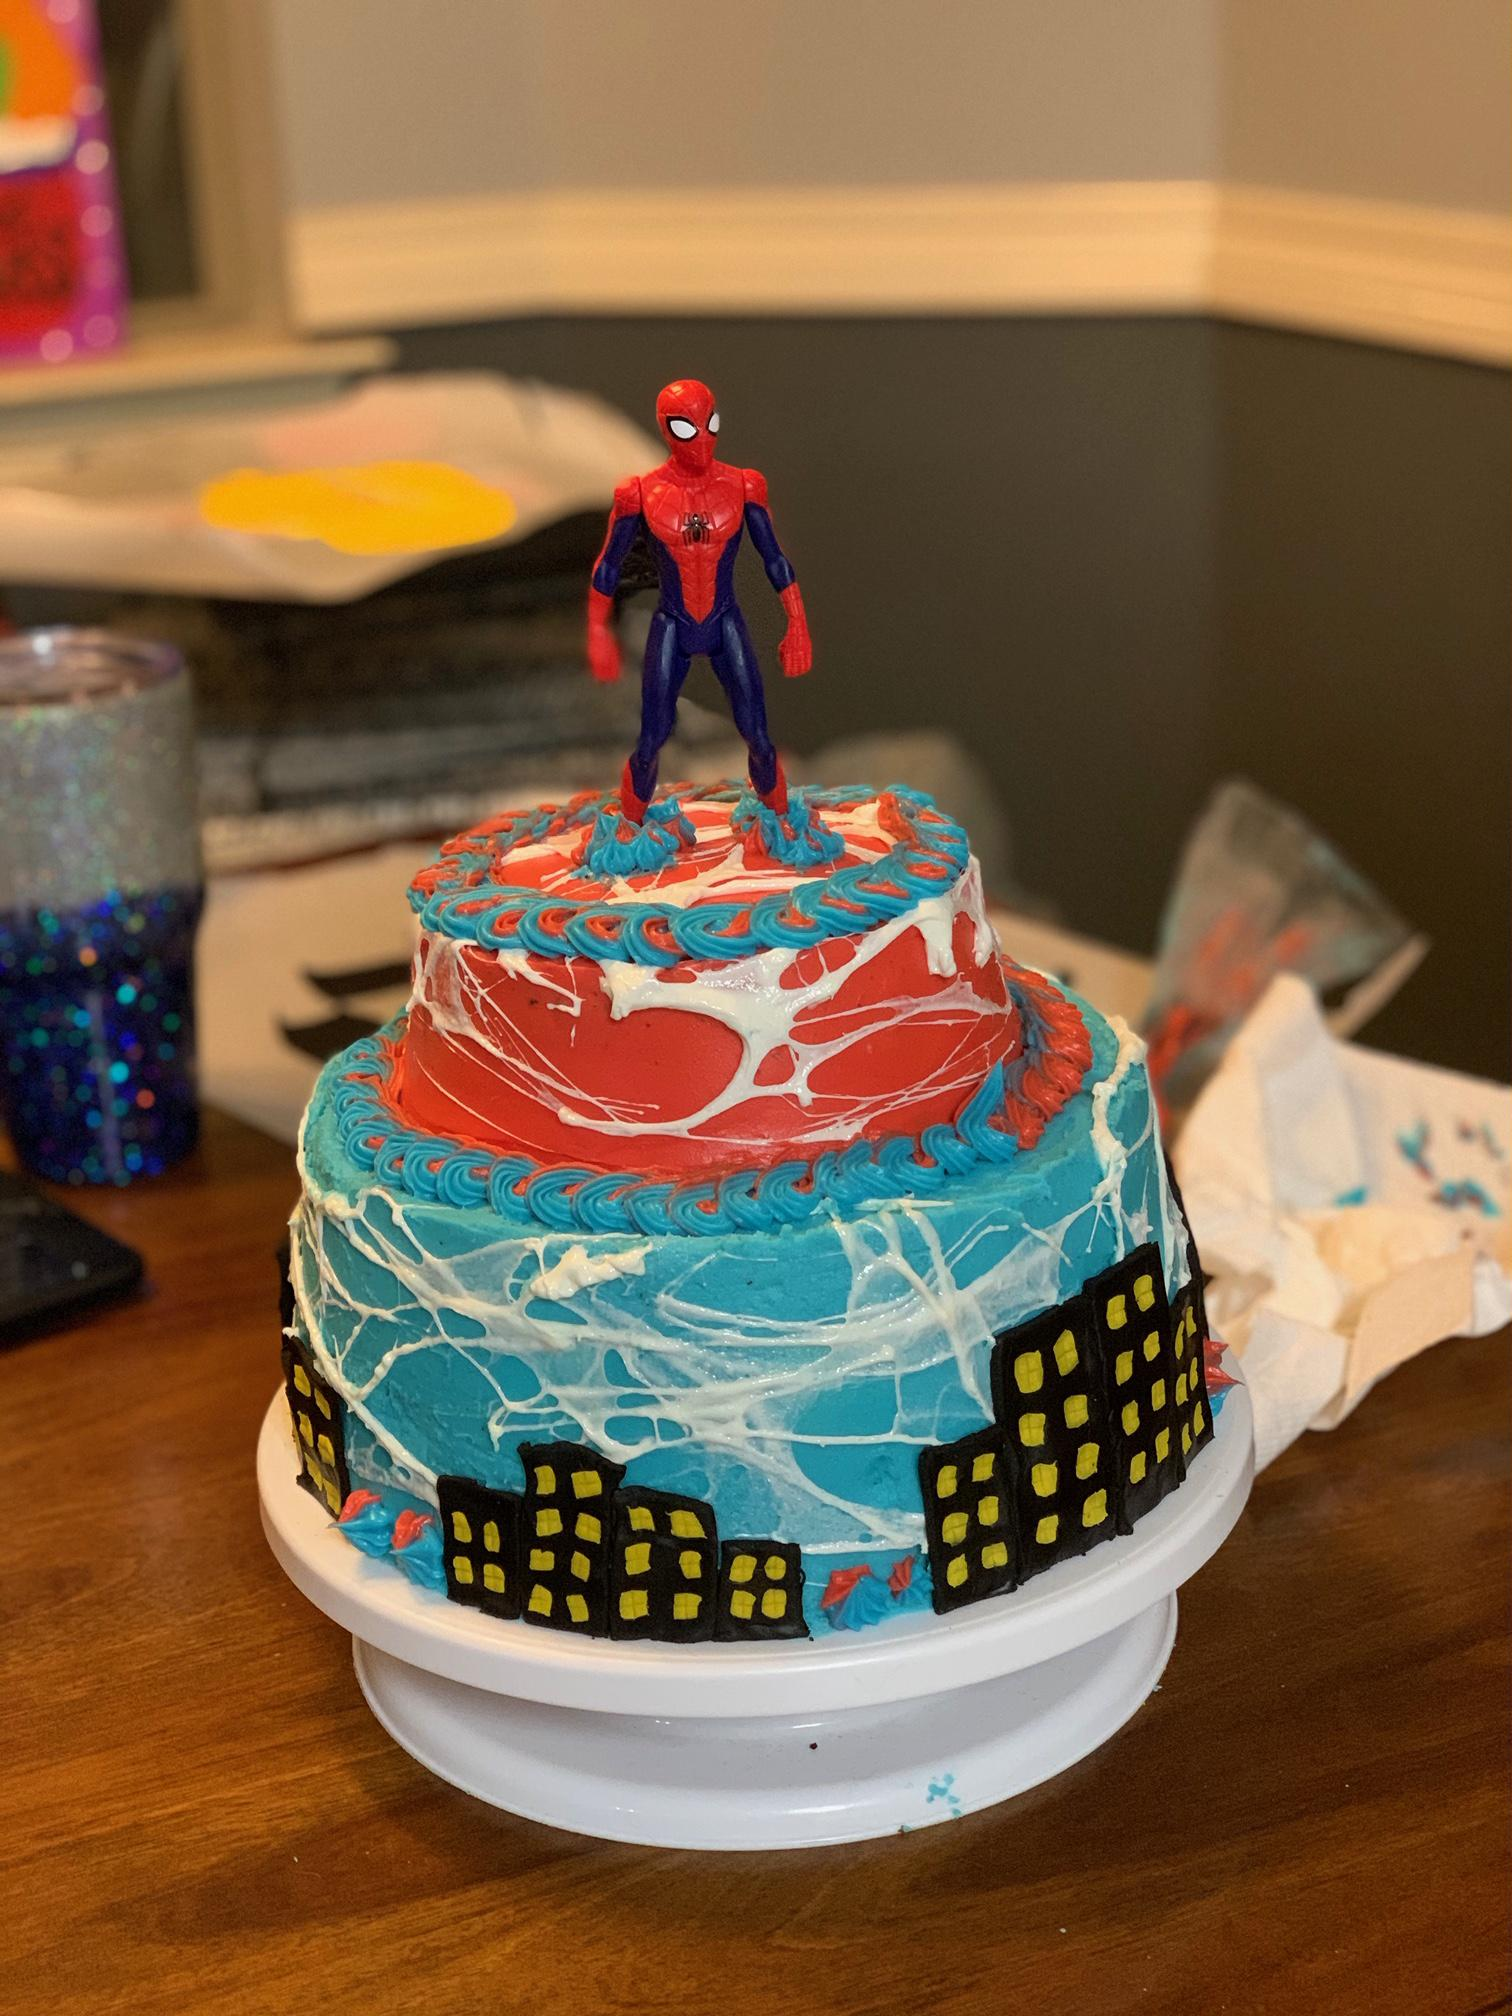 14 Year Old Made Her Brothers Birthday Cake Cakedecorating